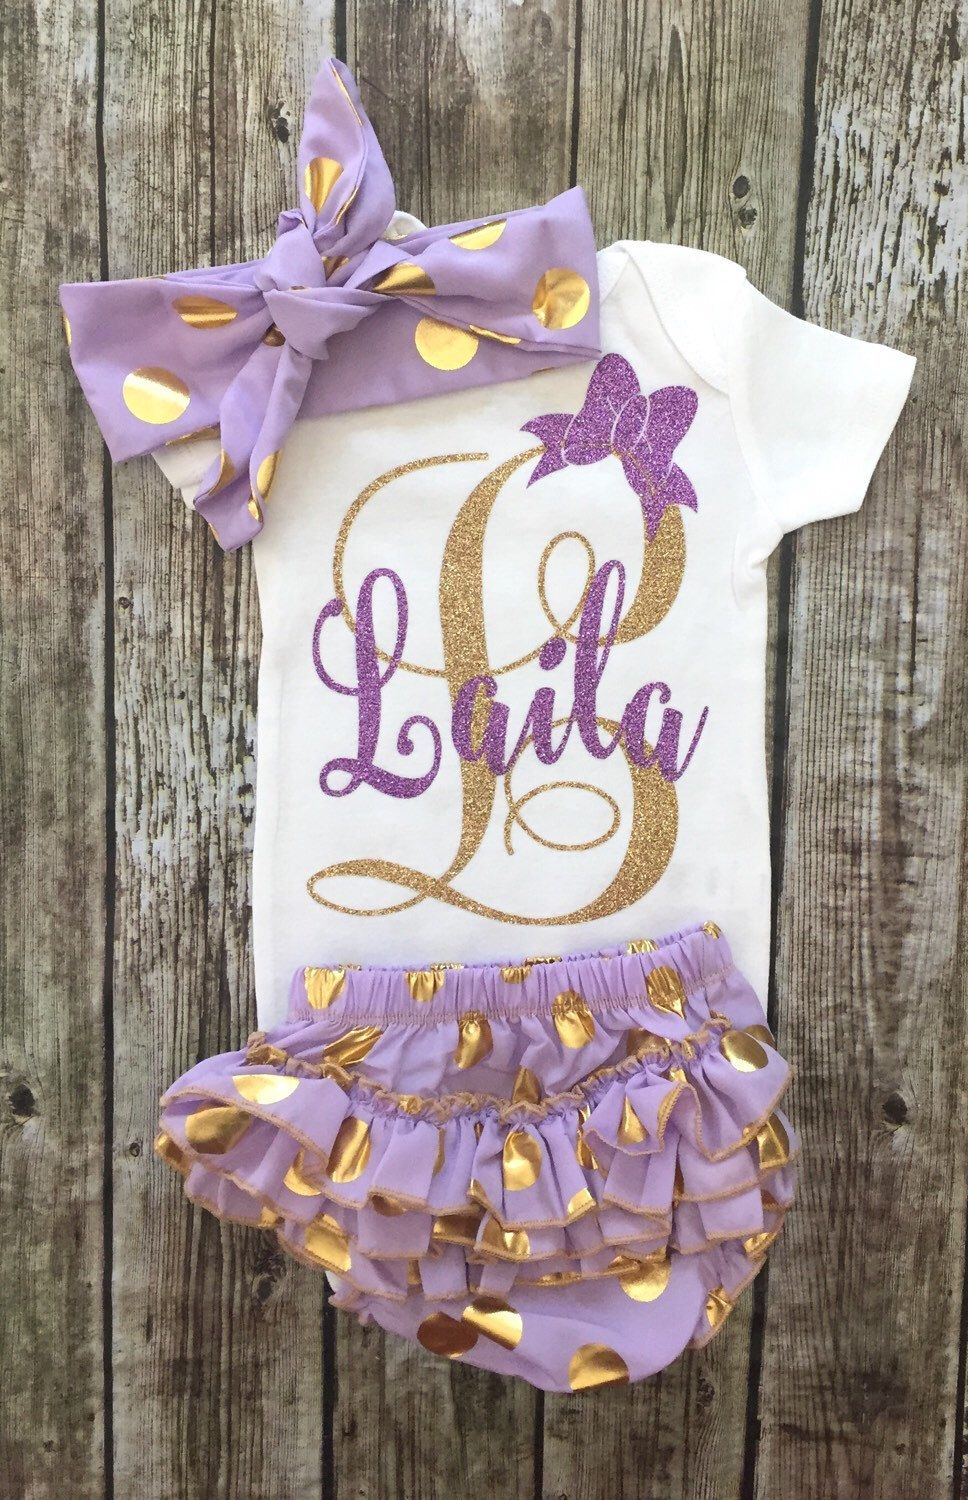 Pin by Kim Collins on O BAbY, baBy! | Baby monogram, Baby ...